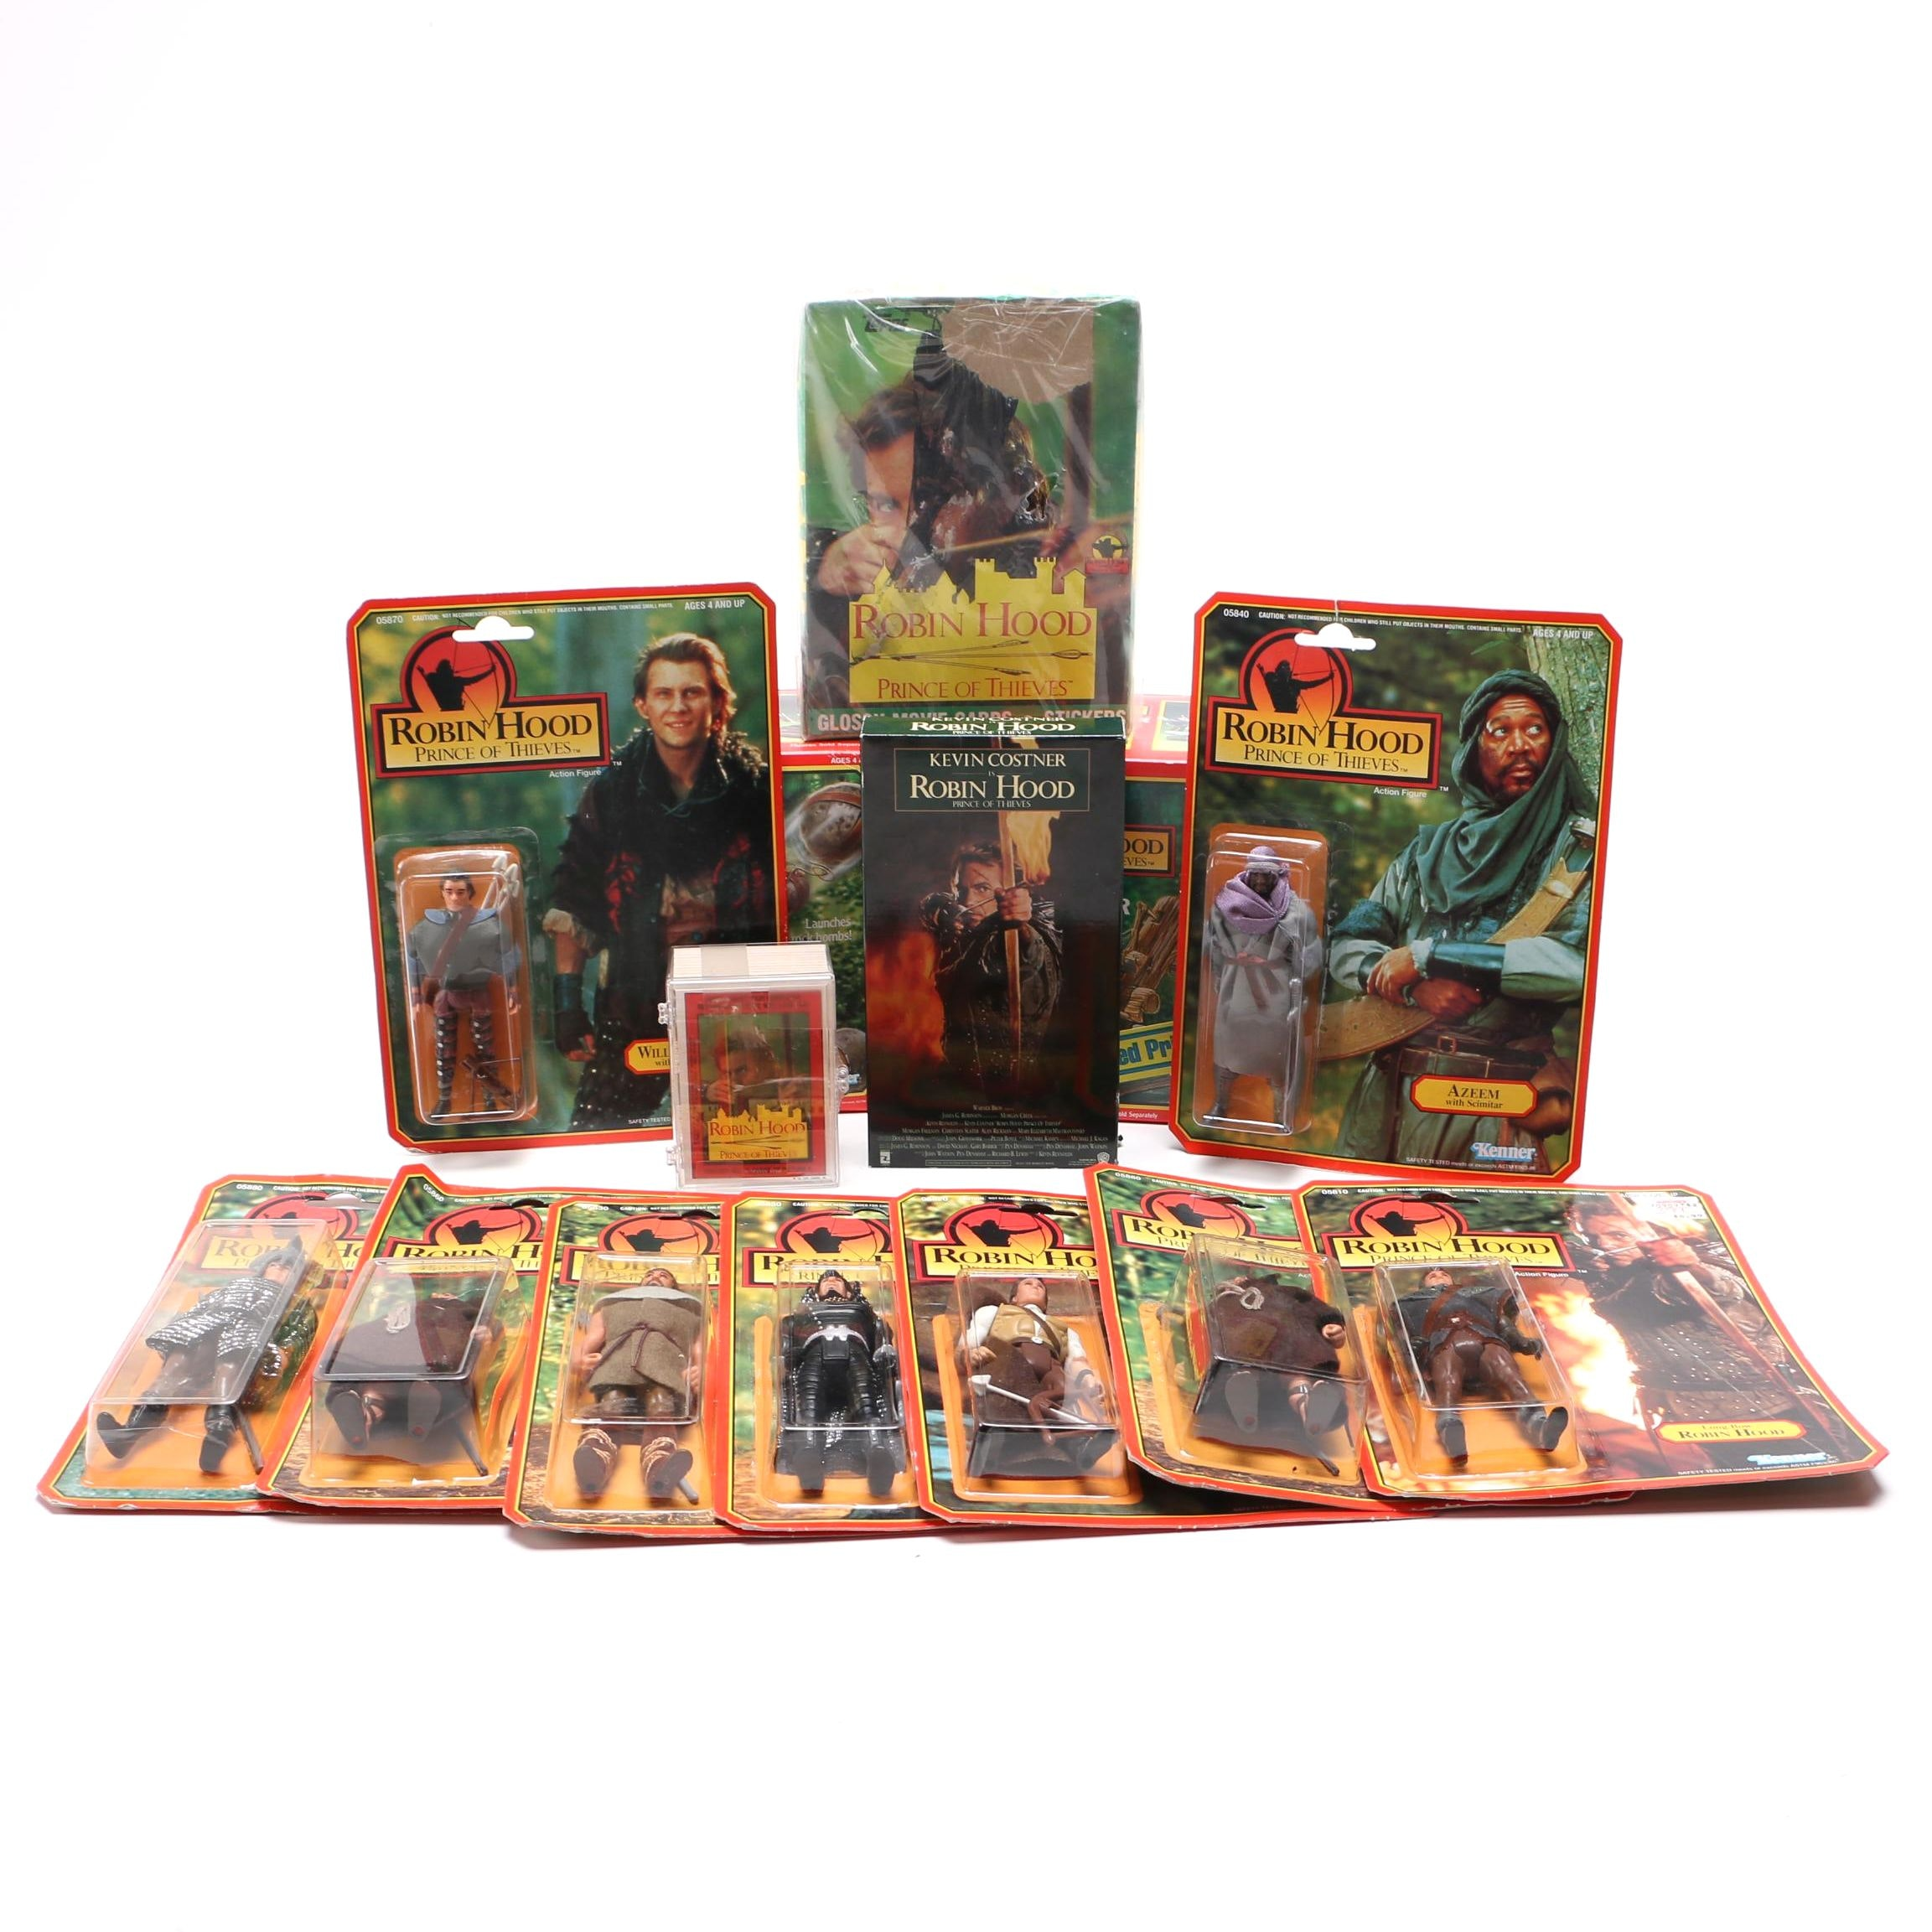 """Robin Hood: Prince of Thieves"" VHS and Action Figures"